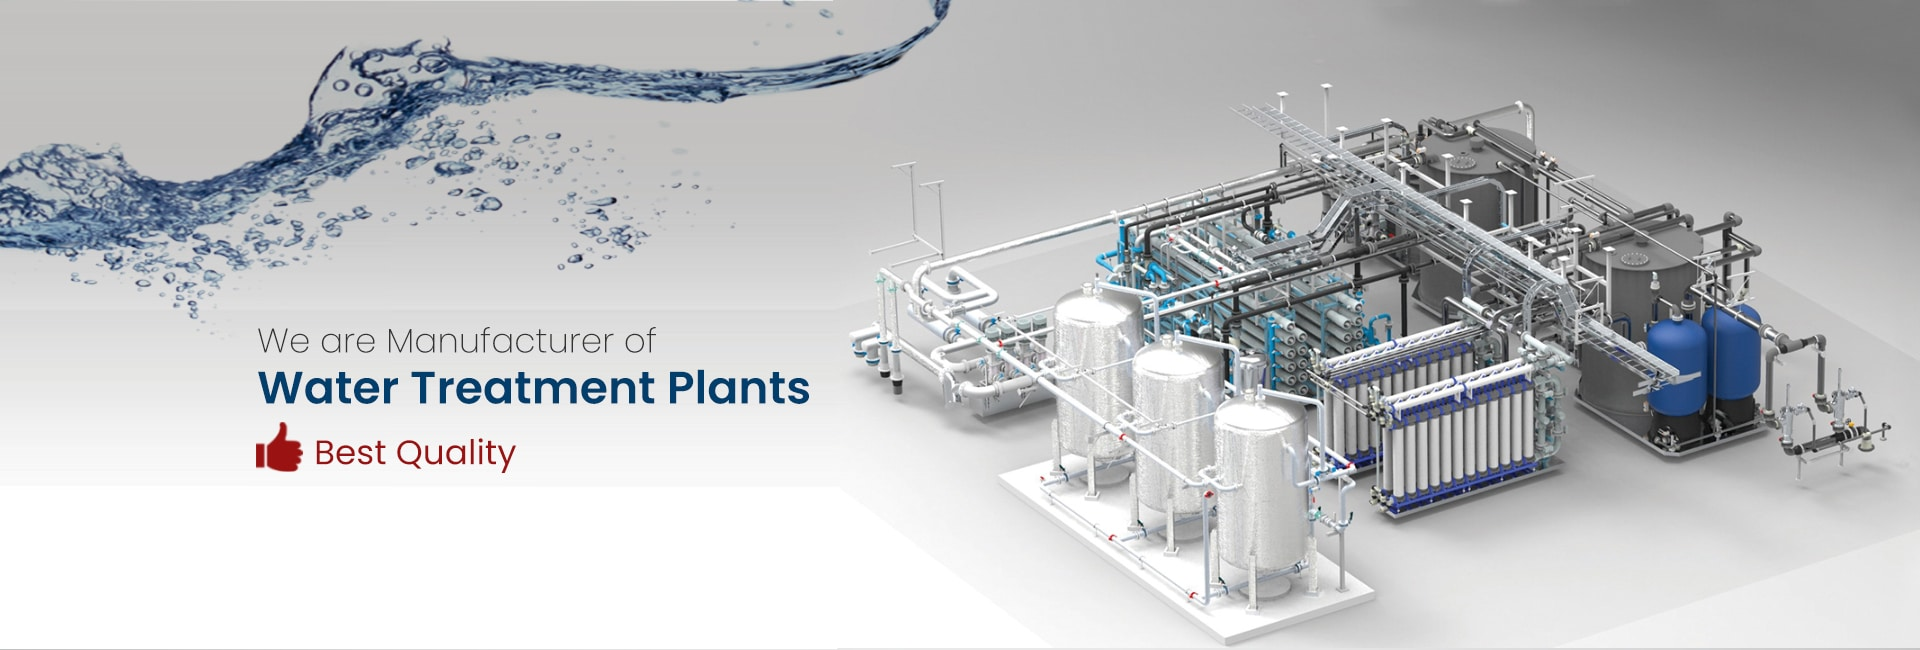 Water Treatment Plants Manufacturers